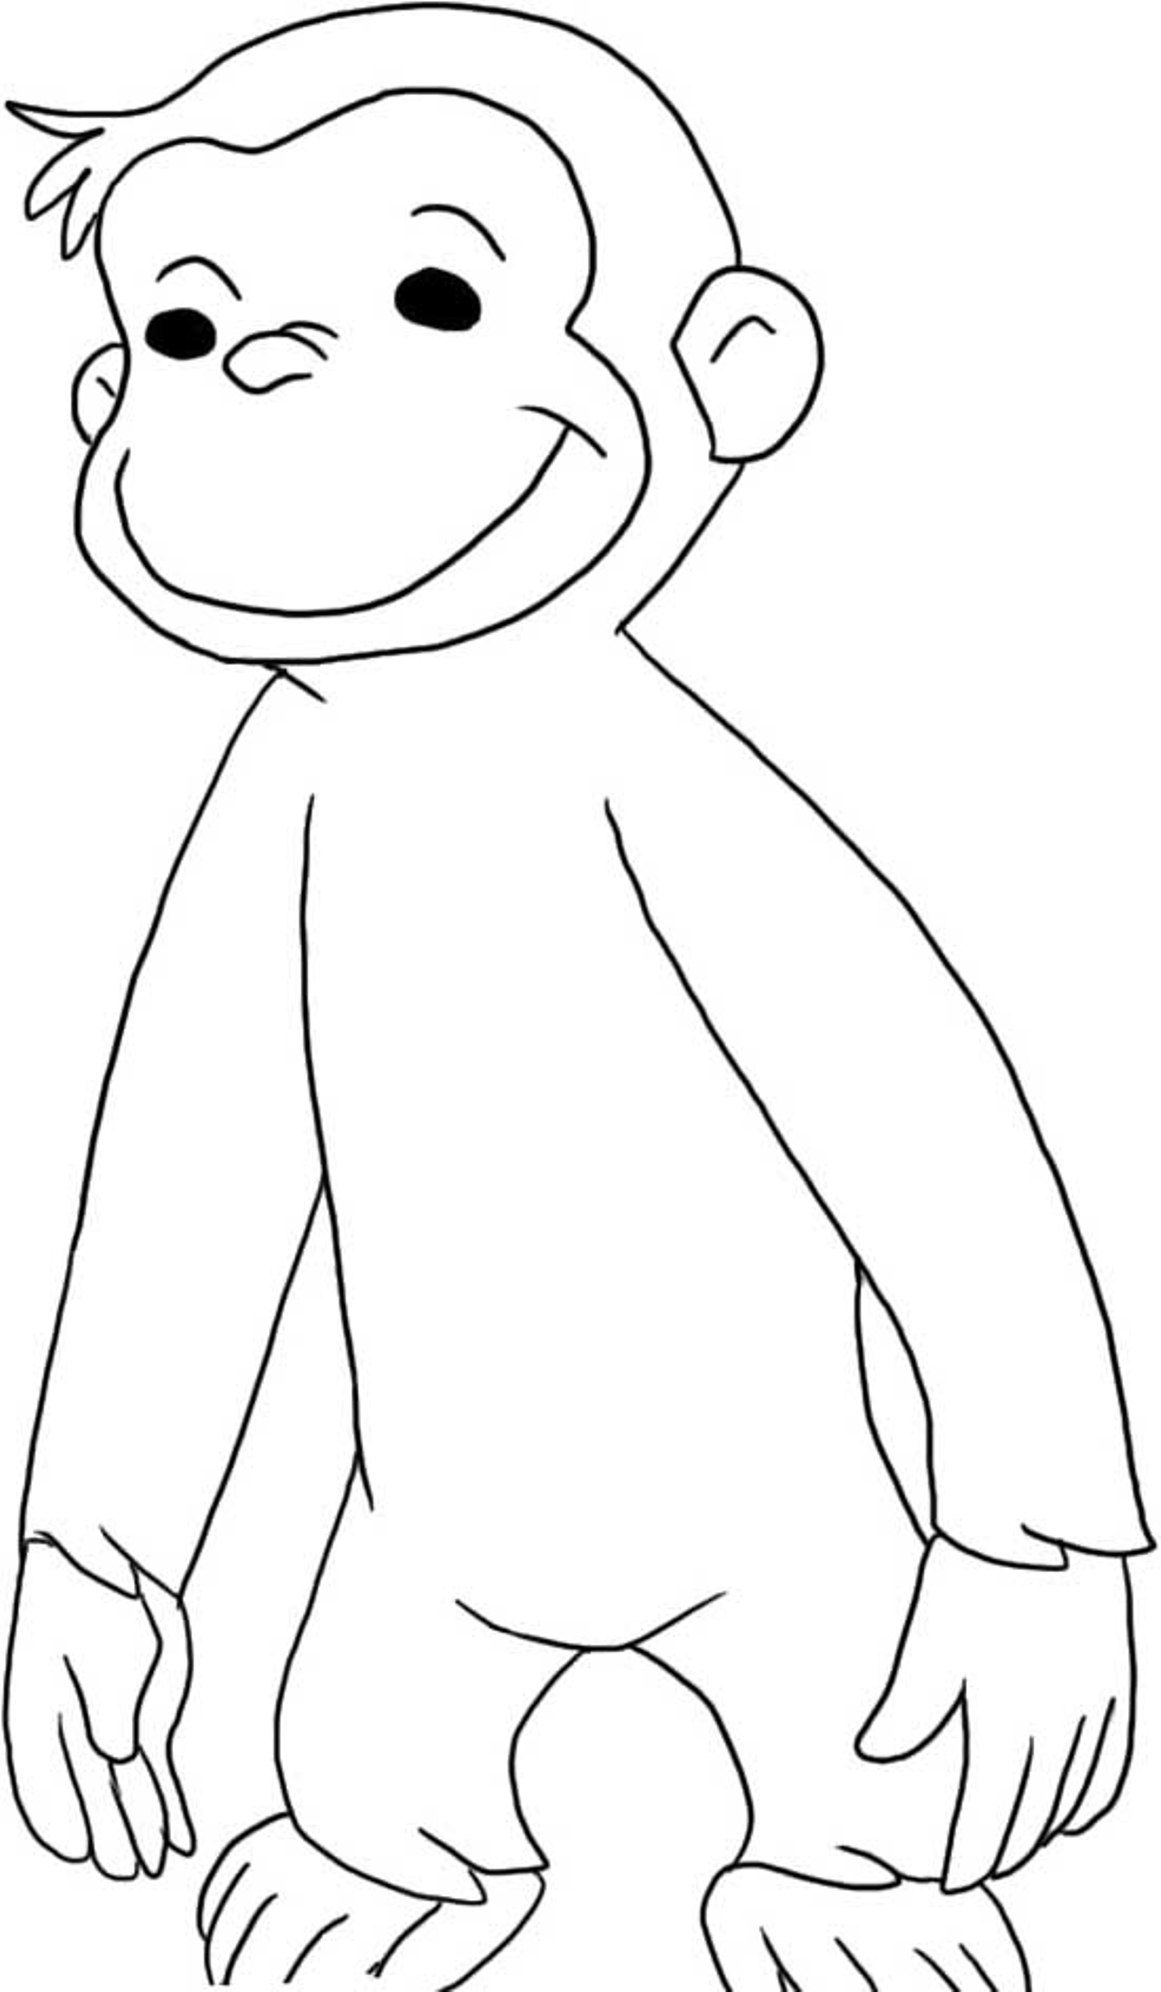 Curious George Coloring Pages To Print Coloring Home